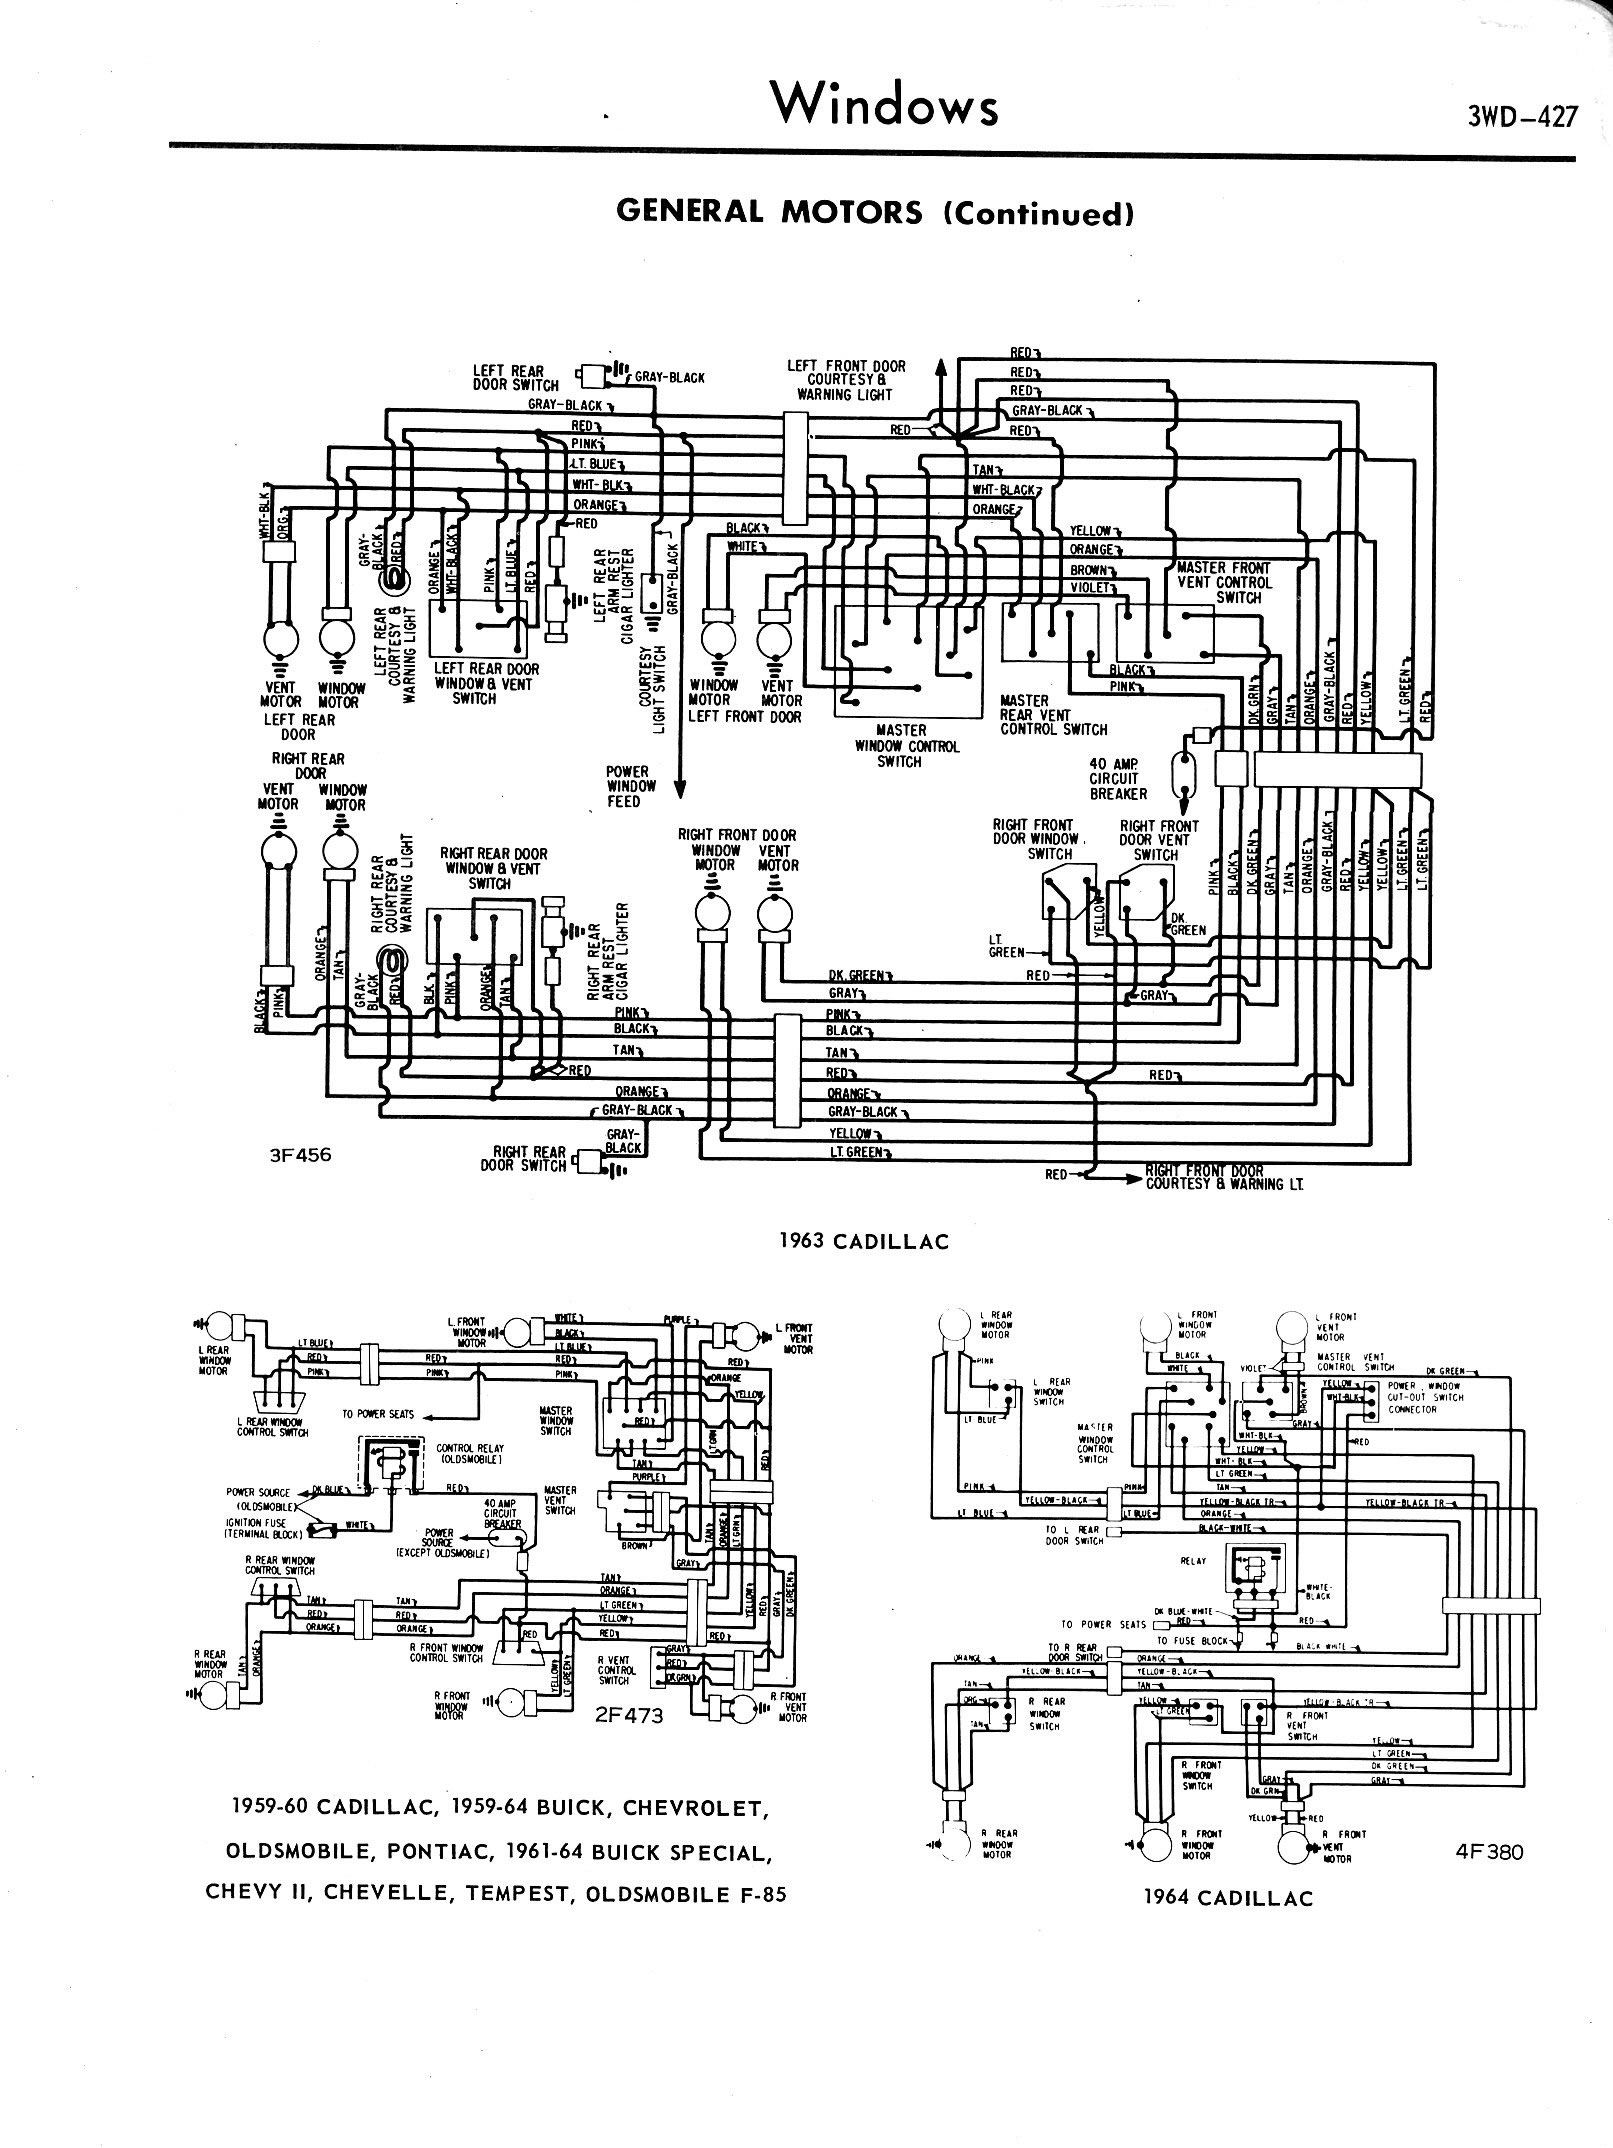 19571965 accessory wiring diagrams 3wd425